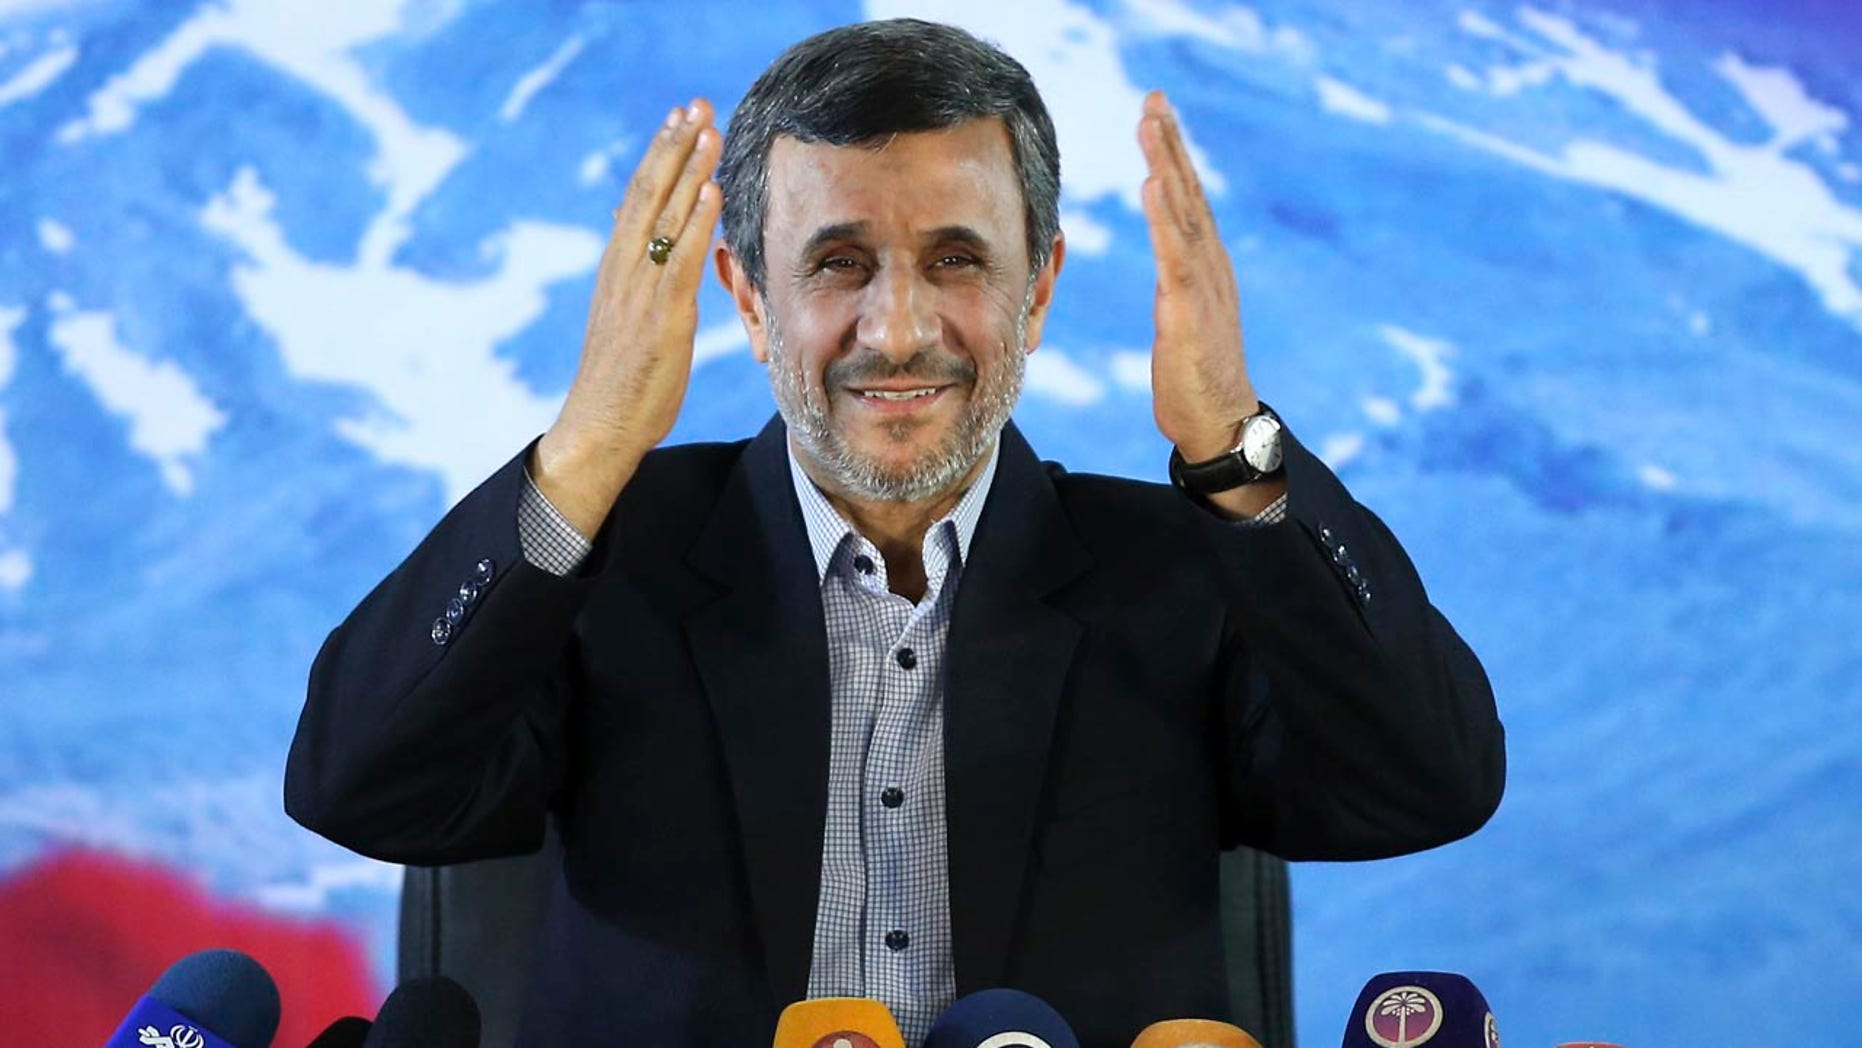 FILE- In this Wednesday, April, 5, 2017 file photo, former Iranian President Mahmoud Ahmadinejad gives a press conference in Tehran, Iran.